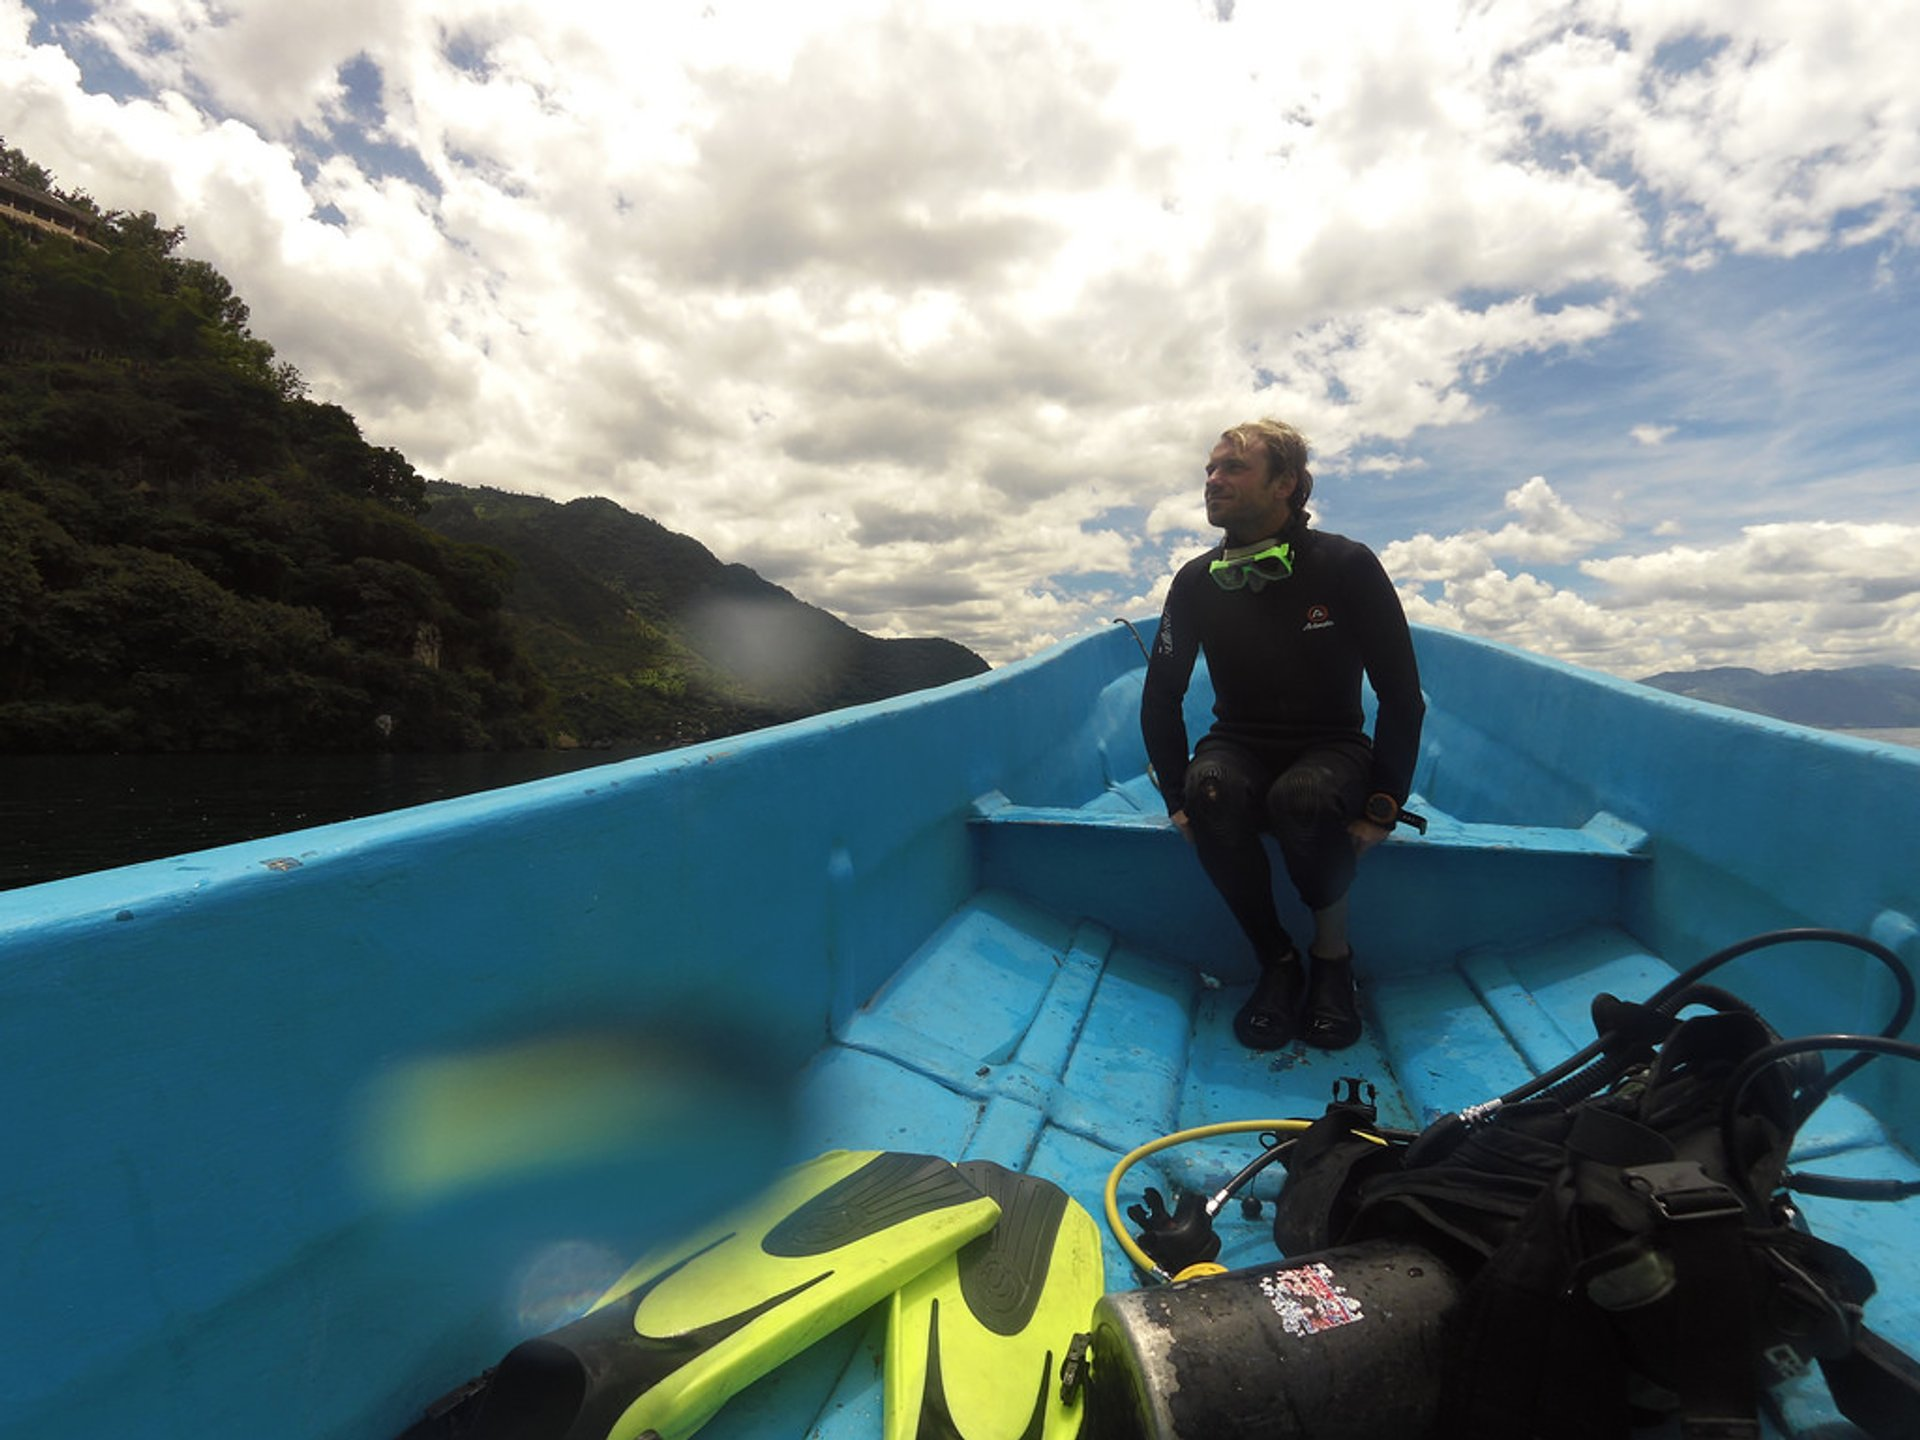 Heading to the diving spot on the Lake Atitlán 2020